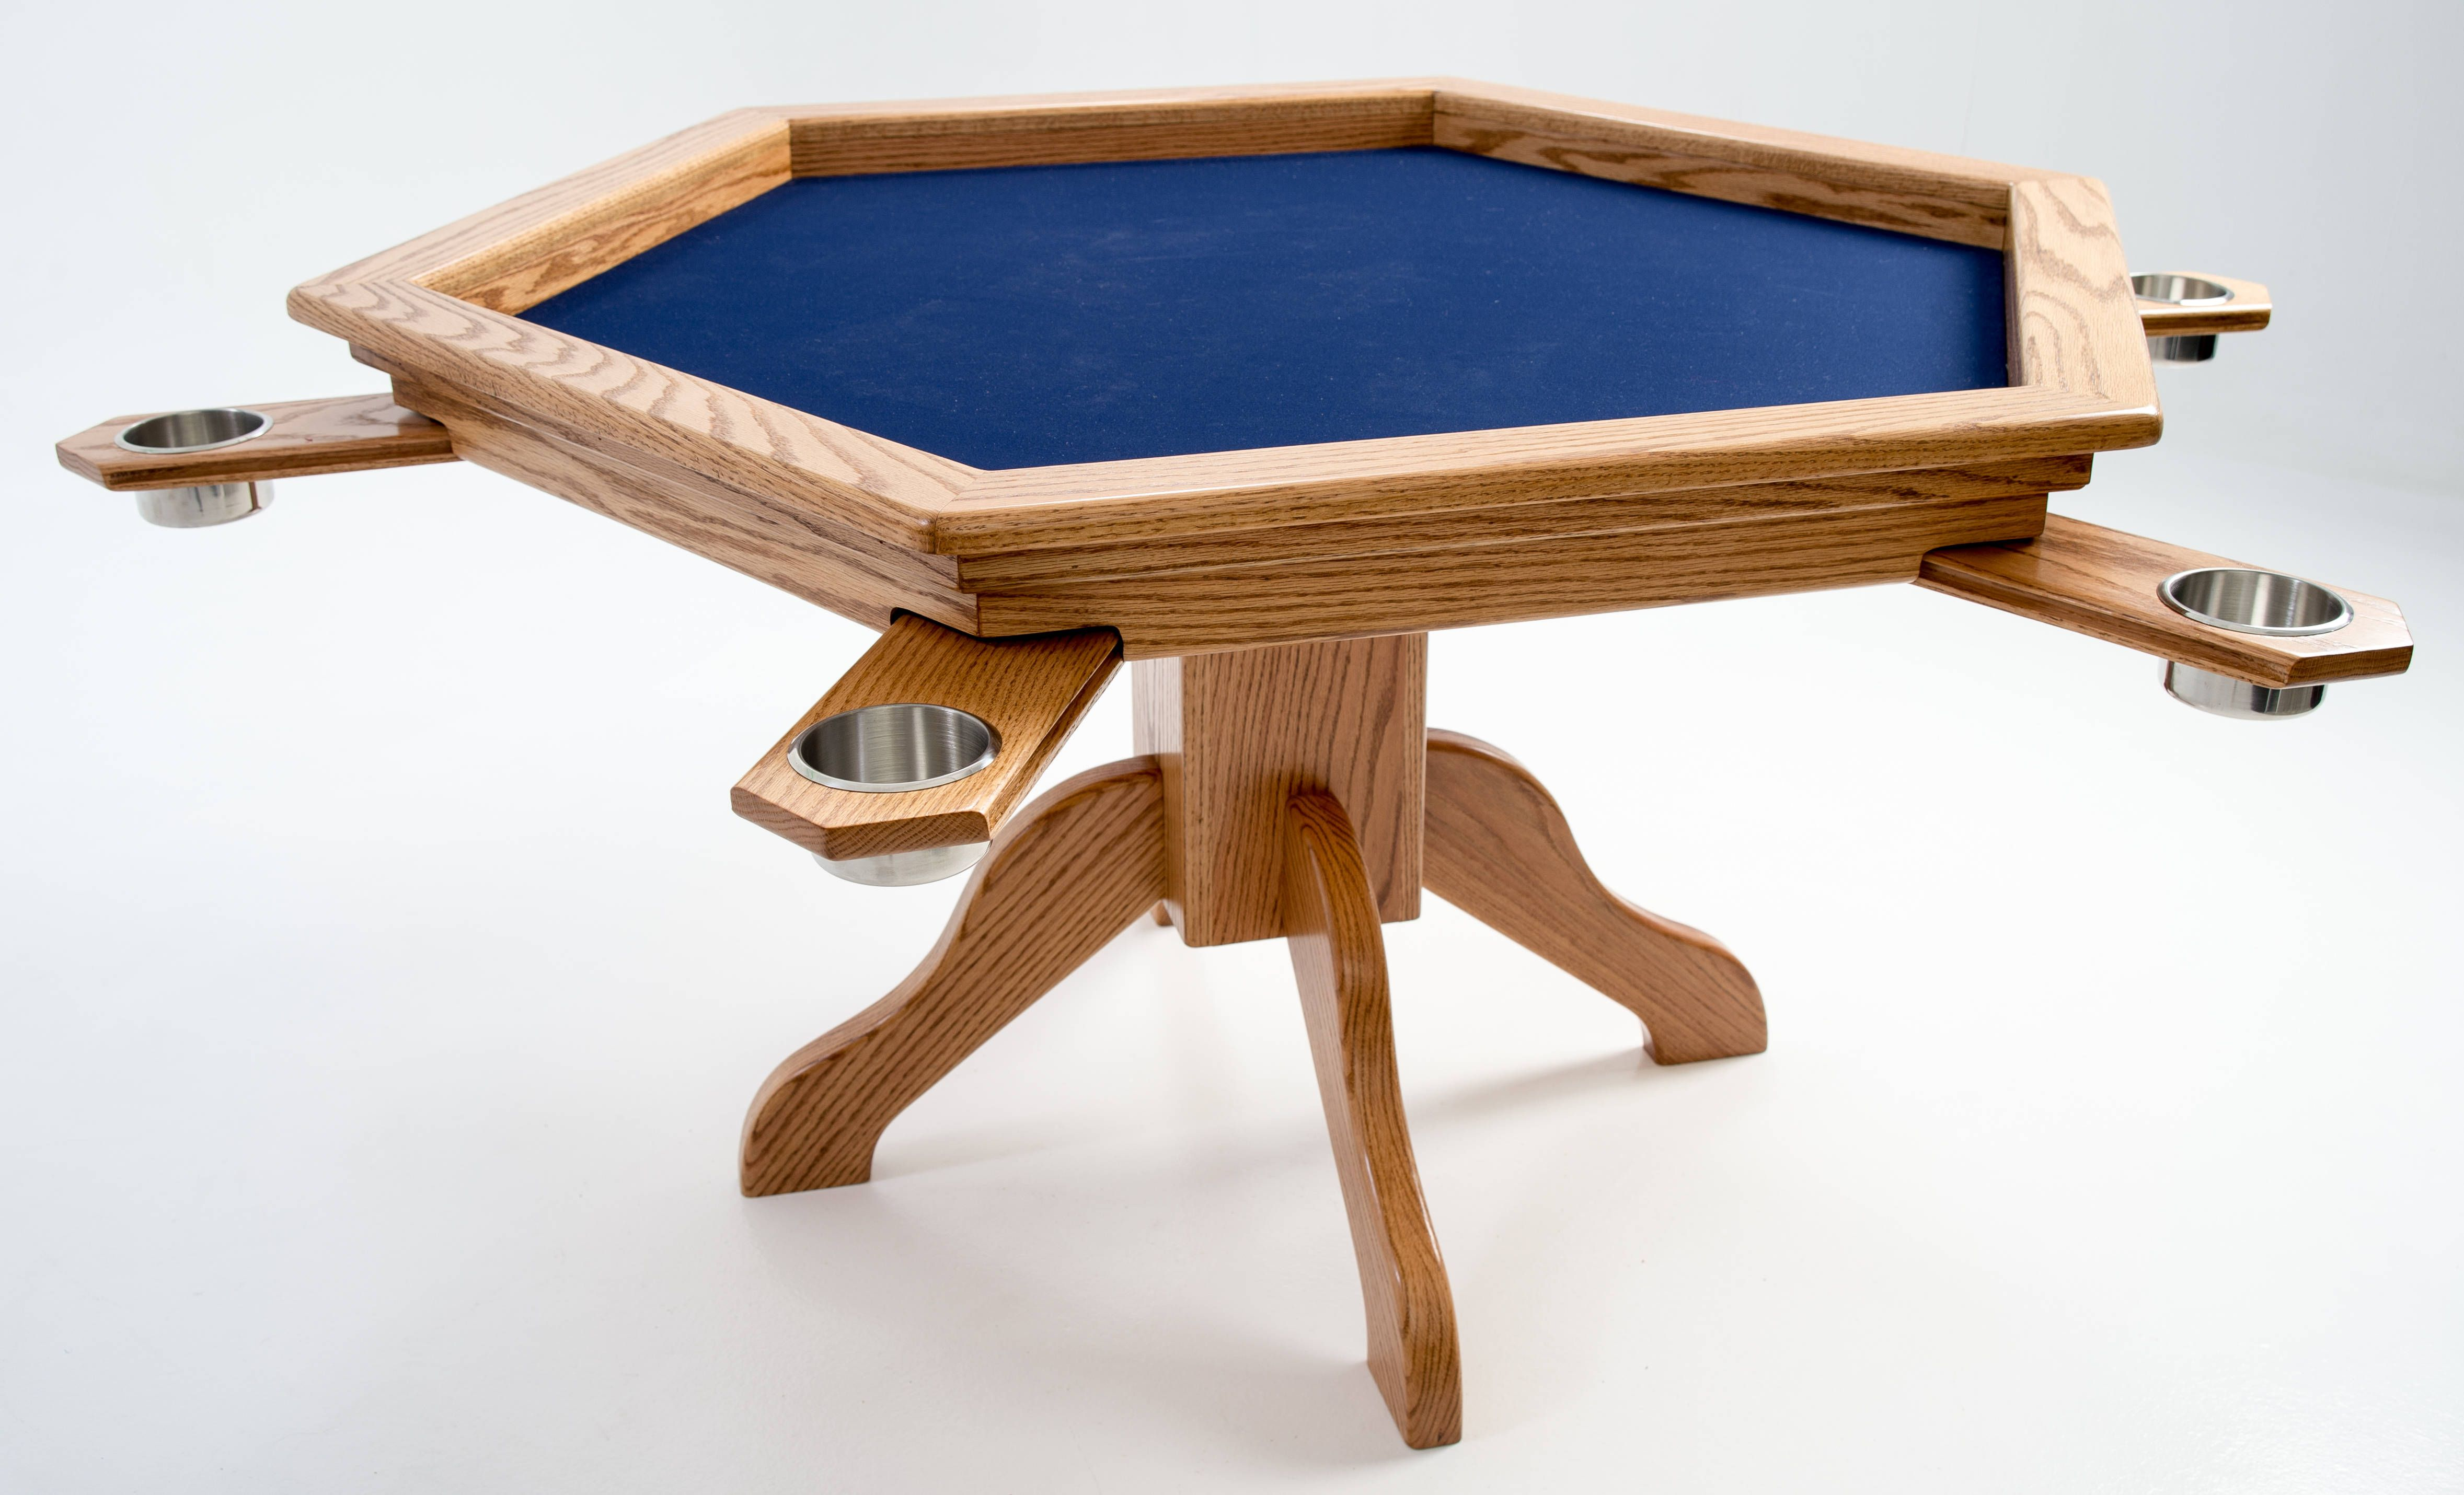 The hexagon table from BoardGameTables Game Room